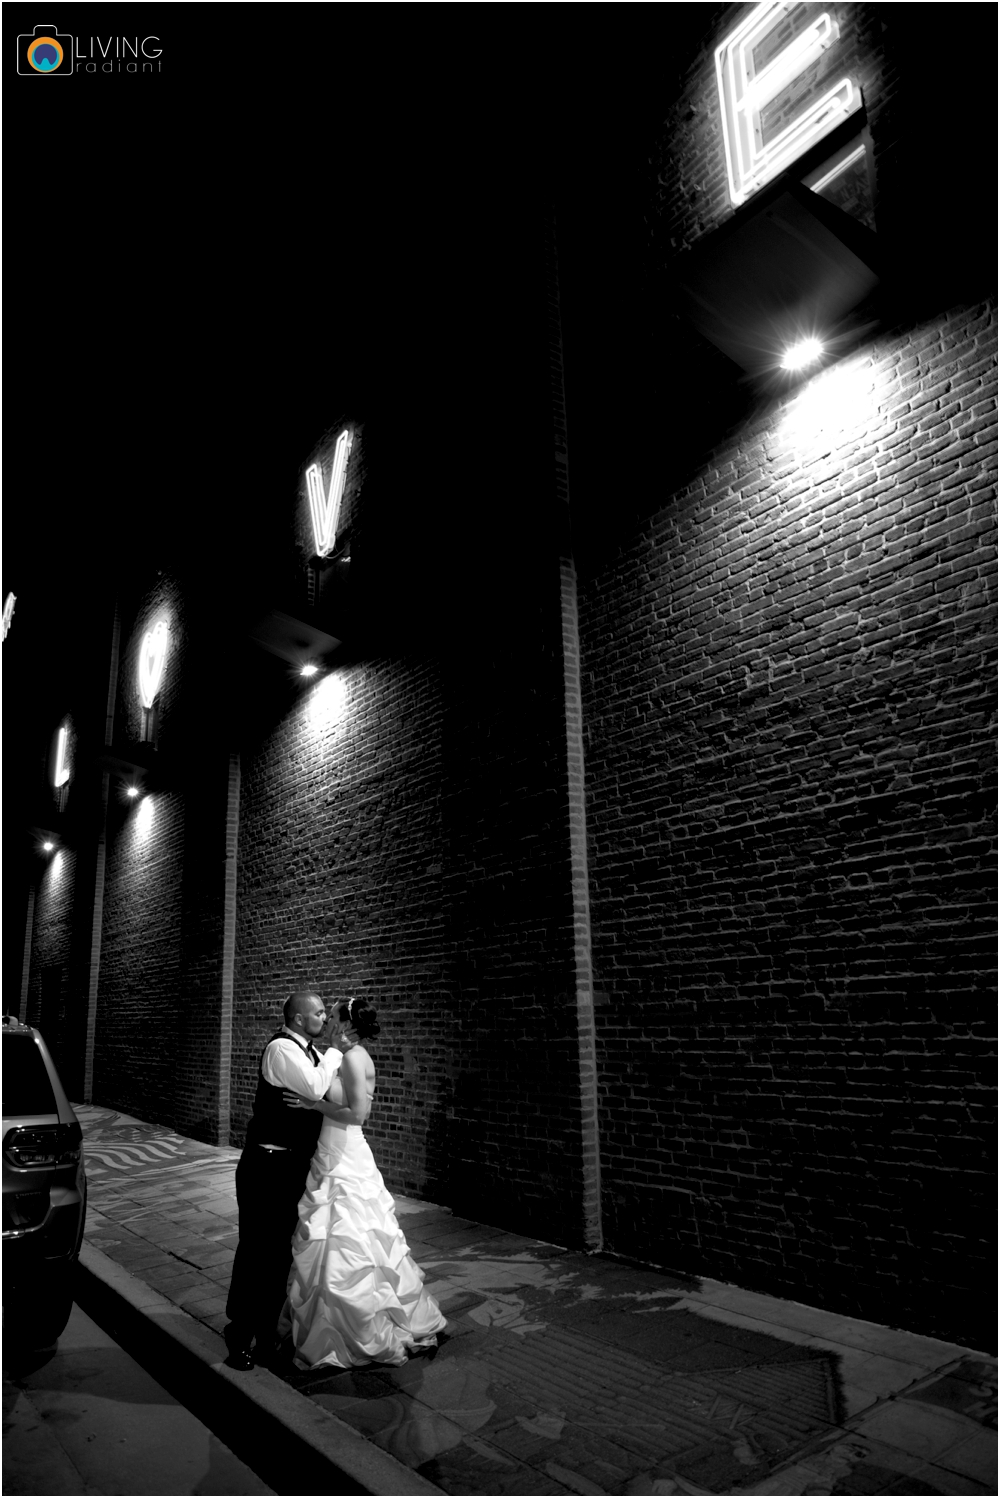 jessica-kevin-mcnally-AVAM-american-visionary-art-museum-downtown-federal-hill-baltimore-inner-harbor-wedding-living-radiant-photography-maggie-patrick-nolan_0117.jpg